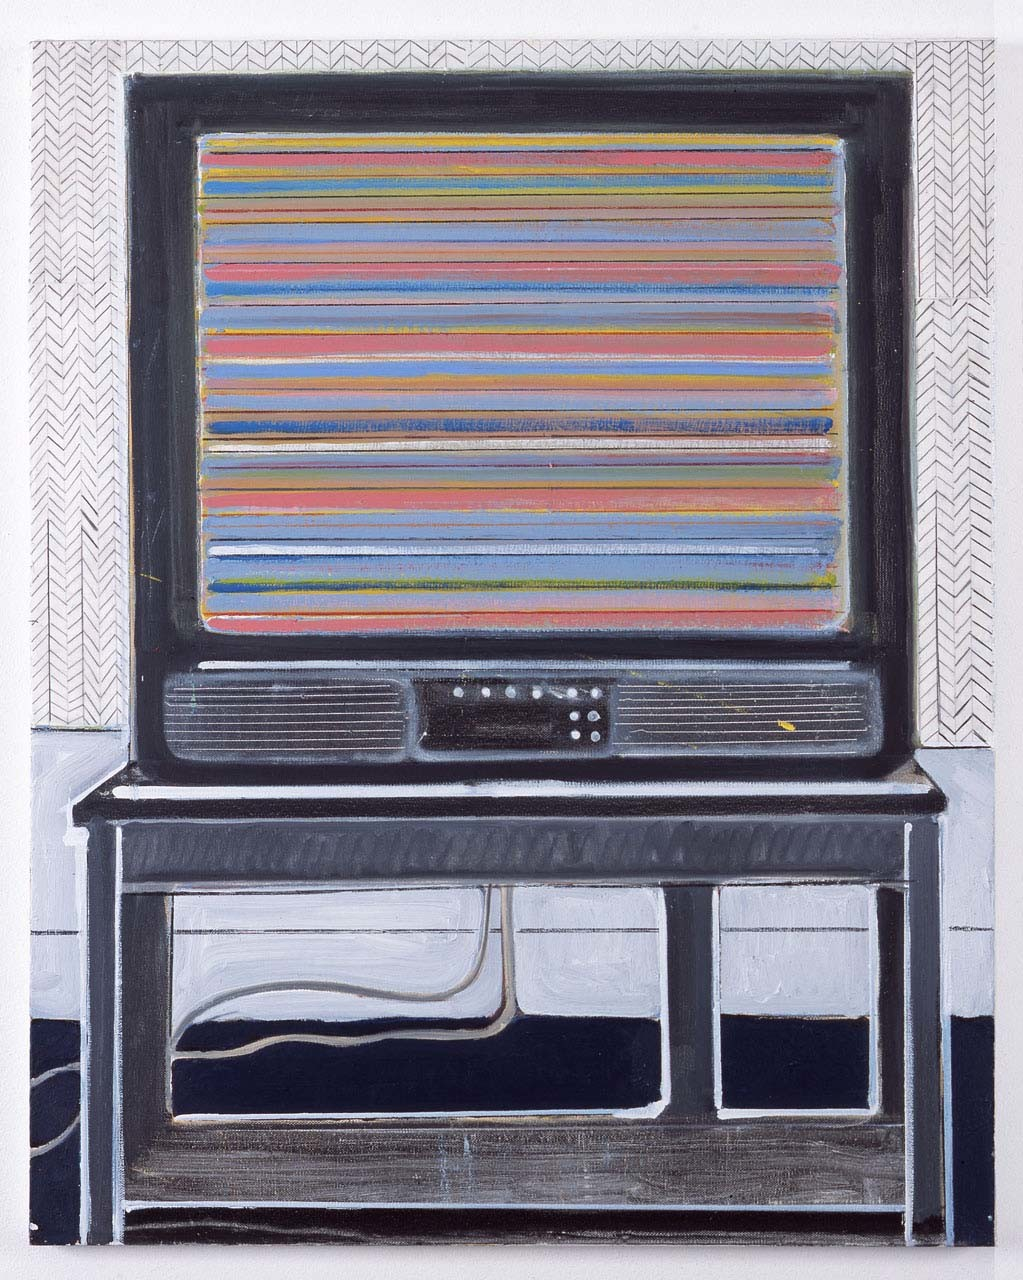 "<div class=""artwork_caption""><p>Television with Herringbone Wallpaper, 2010</p></div>"